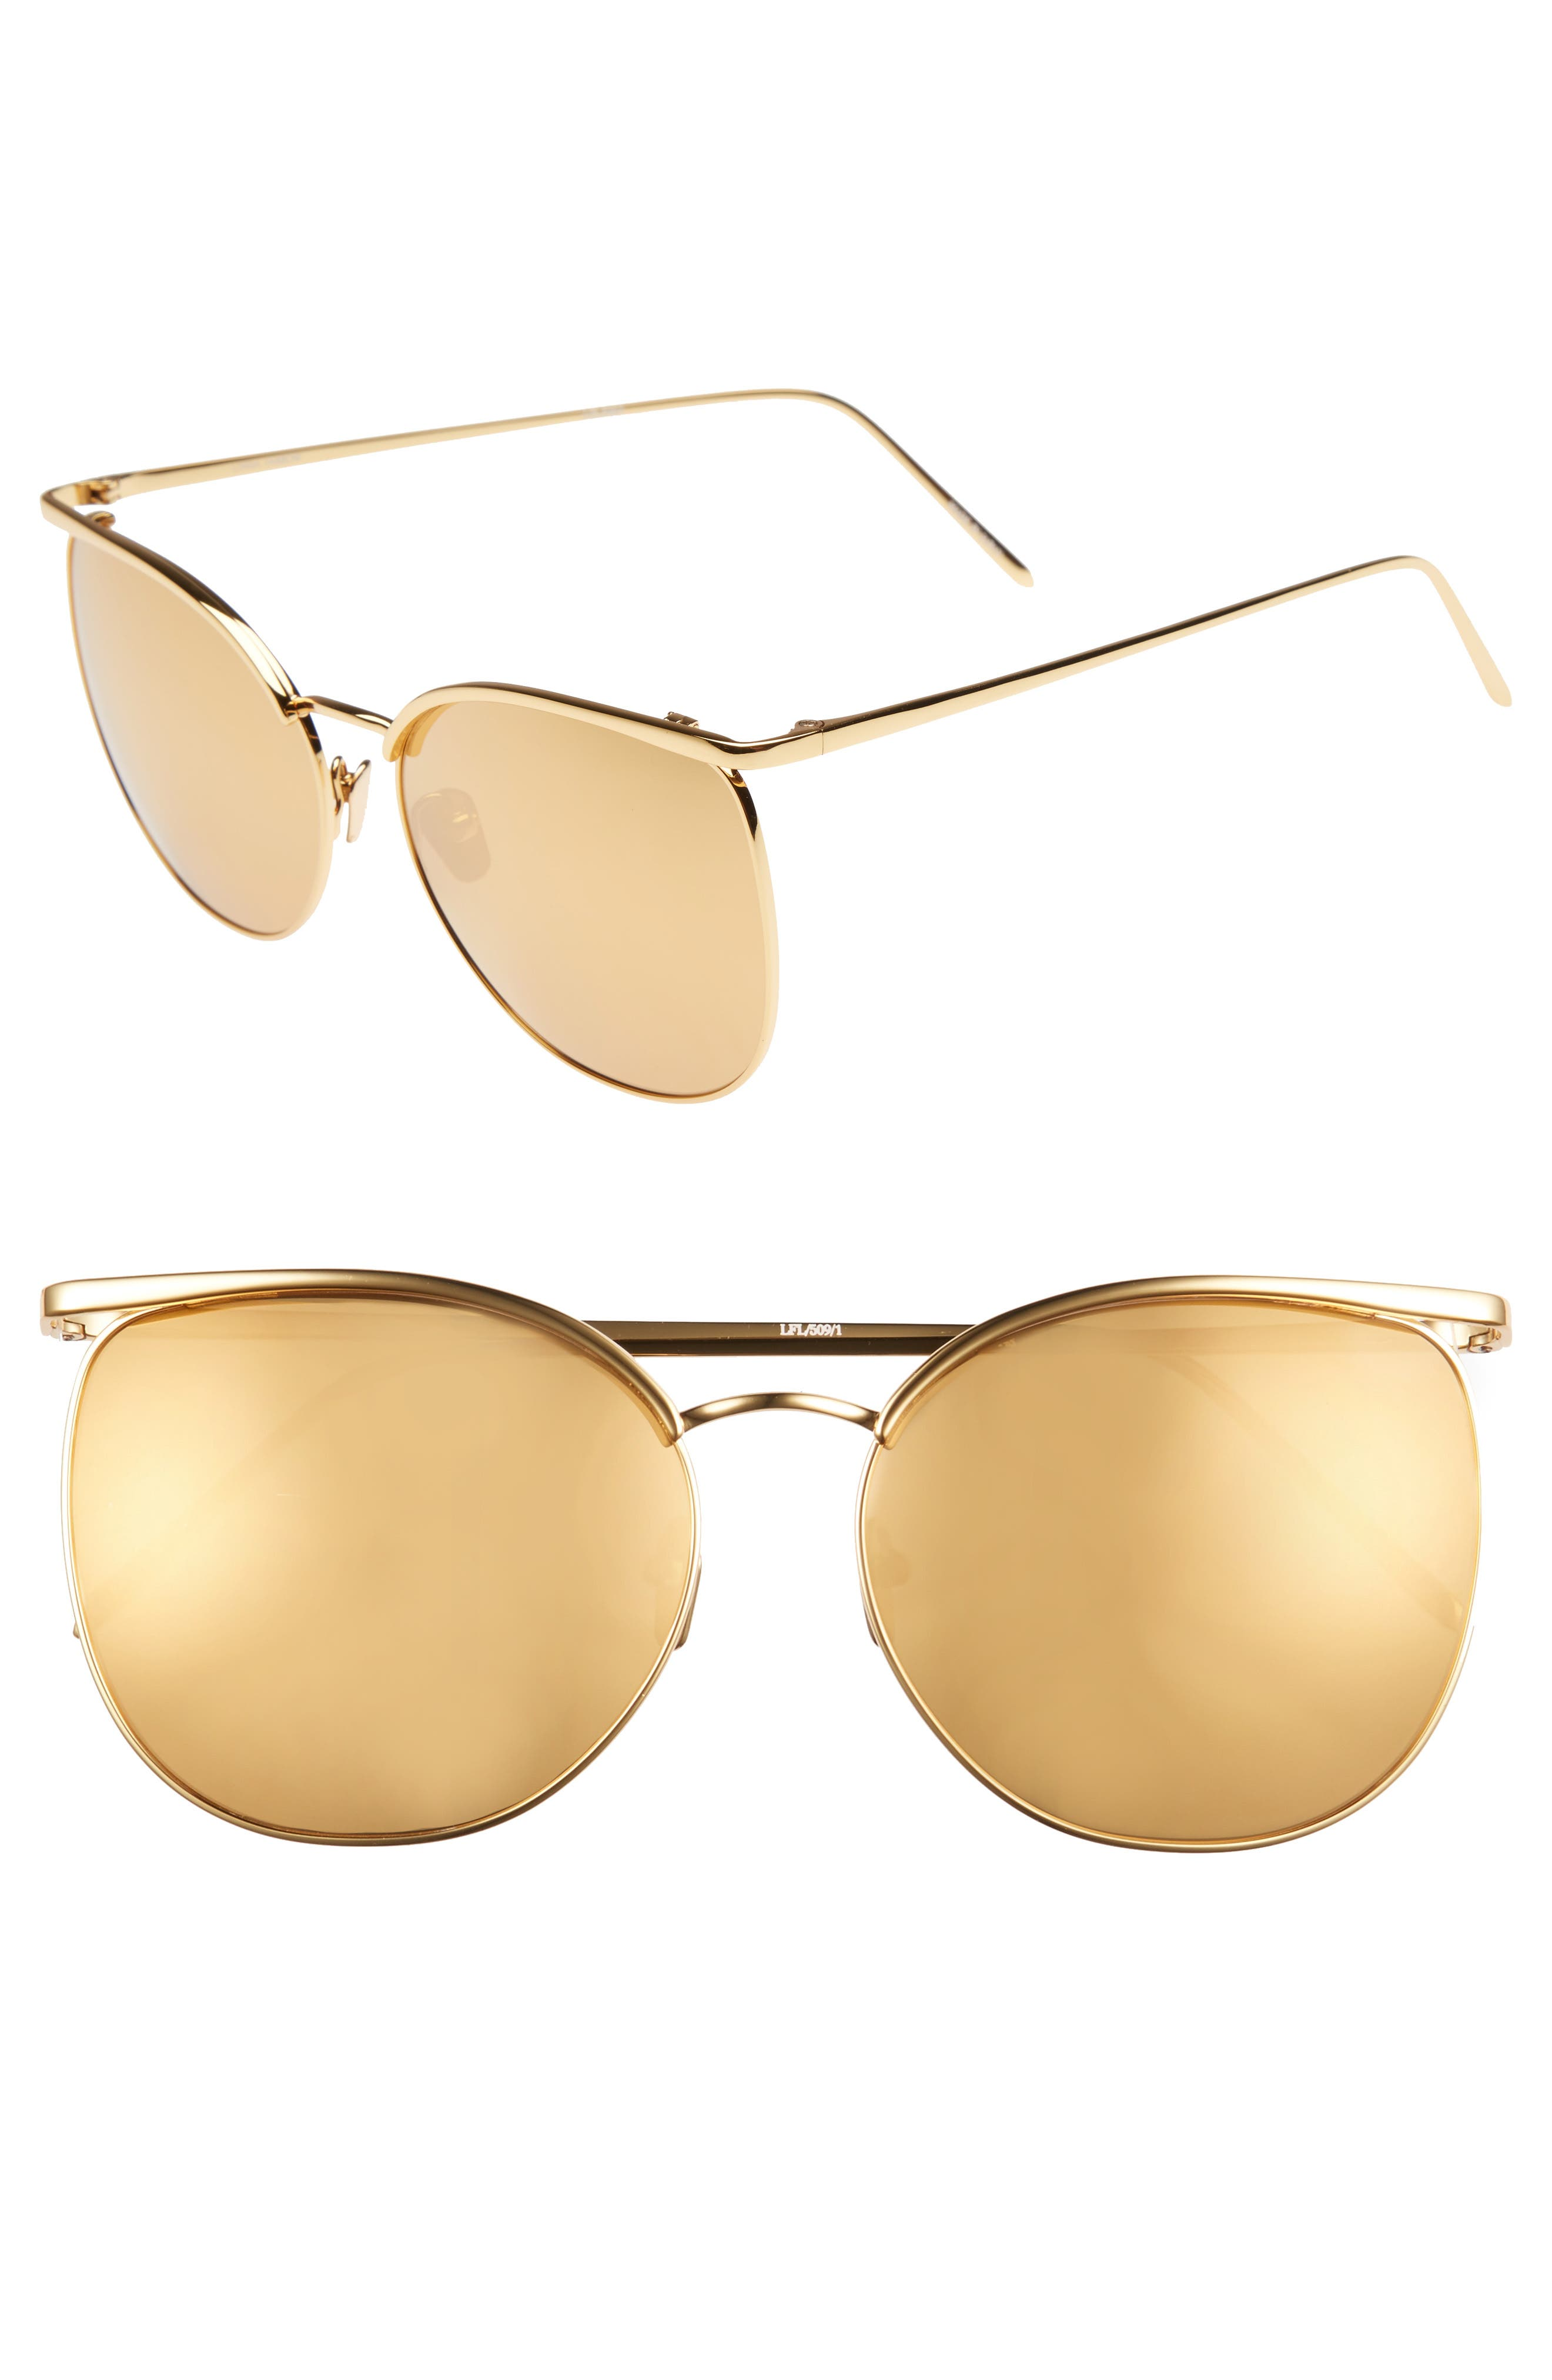 59mm Mirrored 22 Karat Gold Trim Sunglasses,                             Main thumbnail 1, color,                             Yellow Gold/ Gold